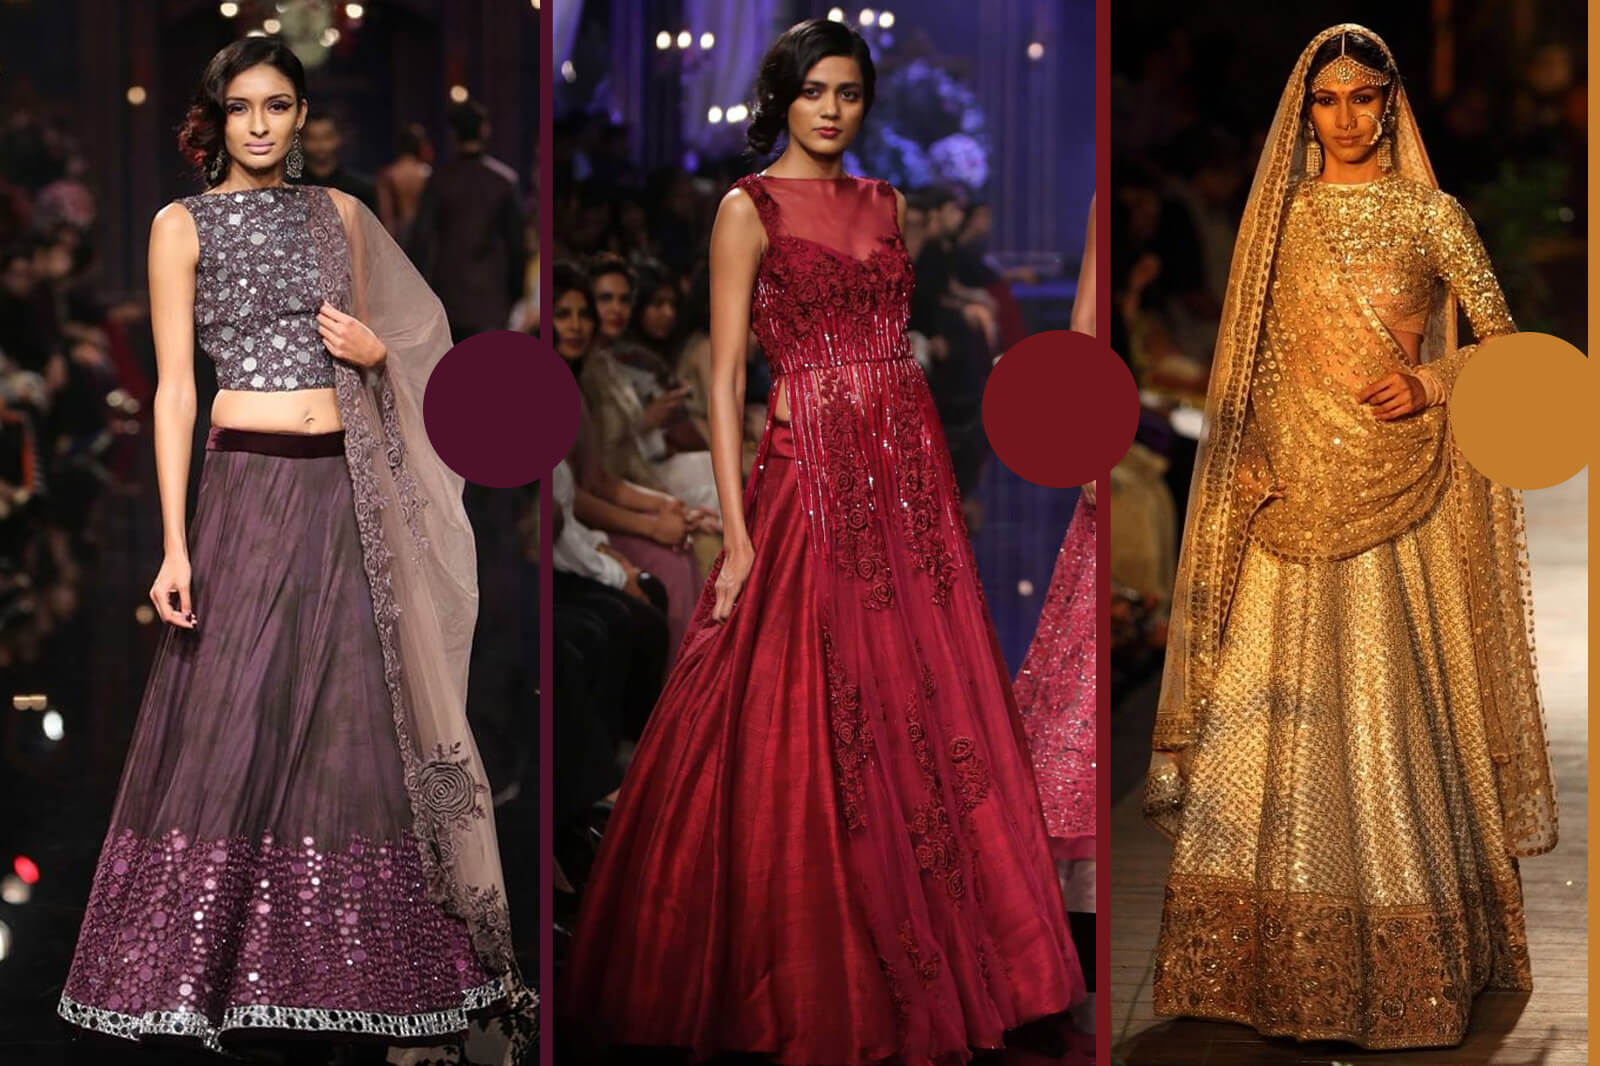 How To Find An Indian Wedding Dress Based On Skin Tone